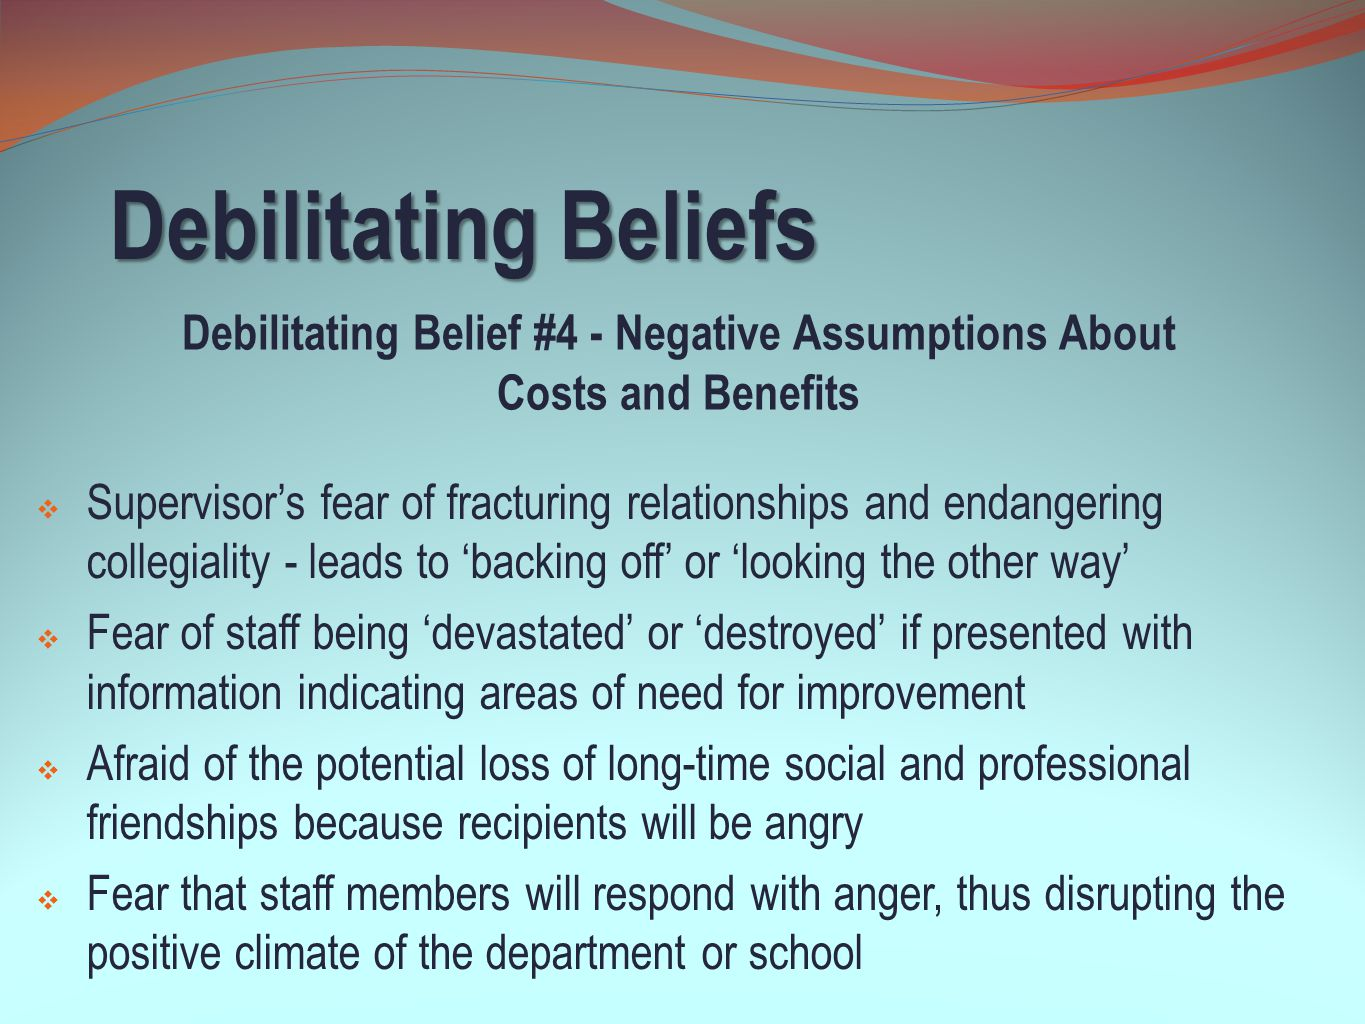 Debilitating Belief #4 - Negative Assumptions About Costs and Benefits